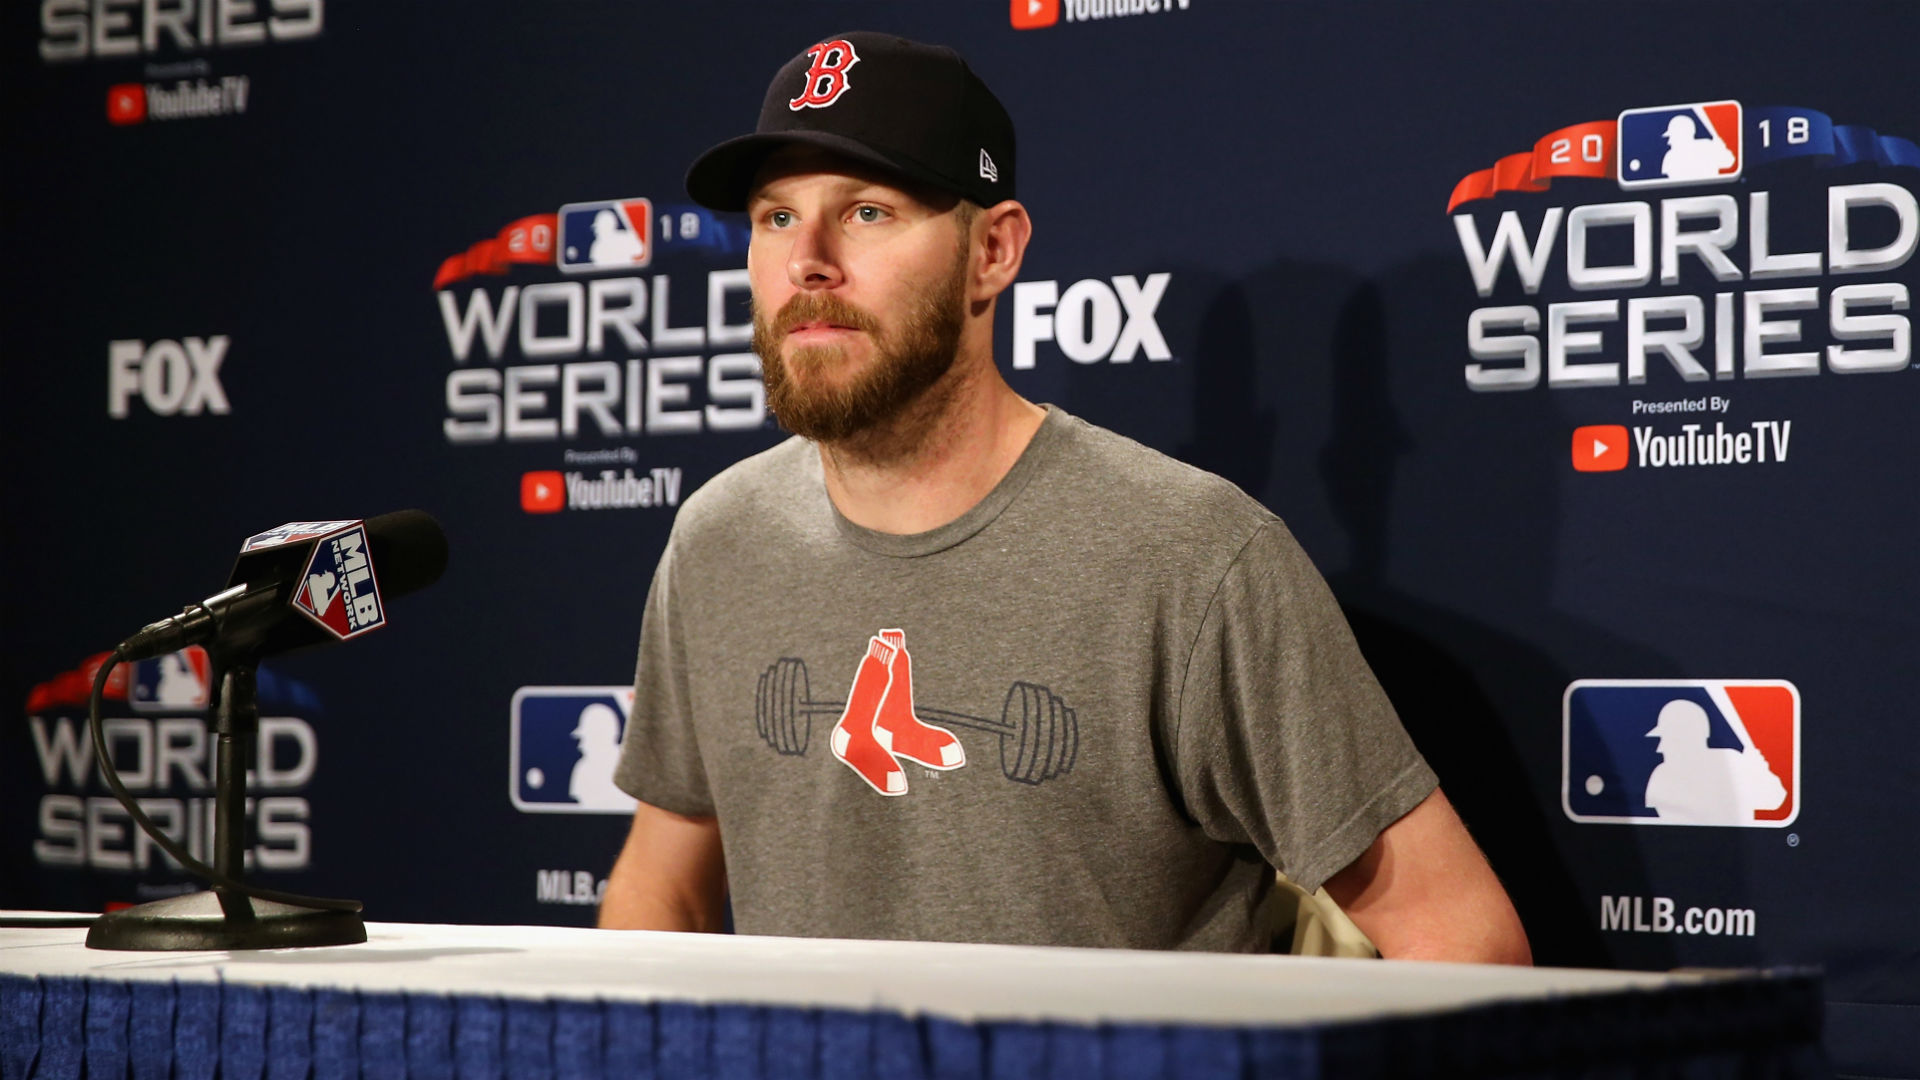 World Series 2018: Chris Sale delivers fiery speech in Game 4 to spark Red Sox rally